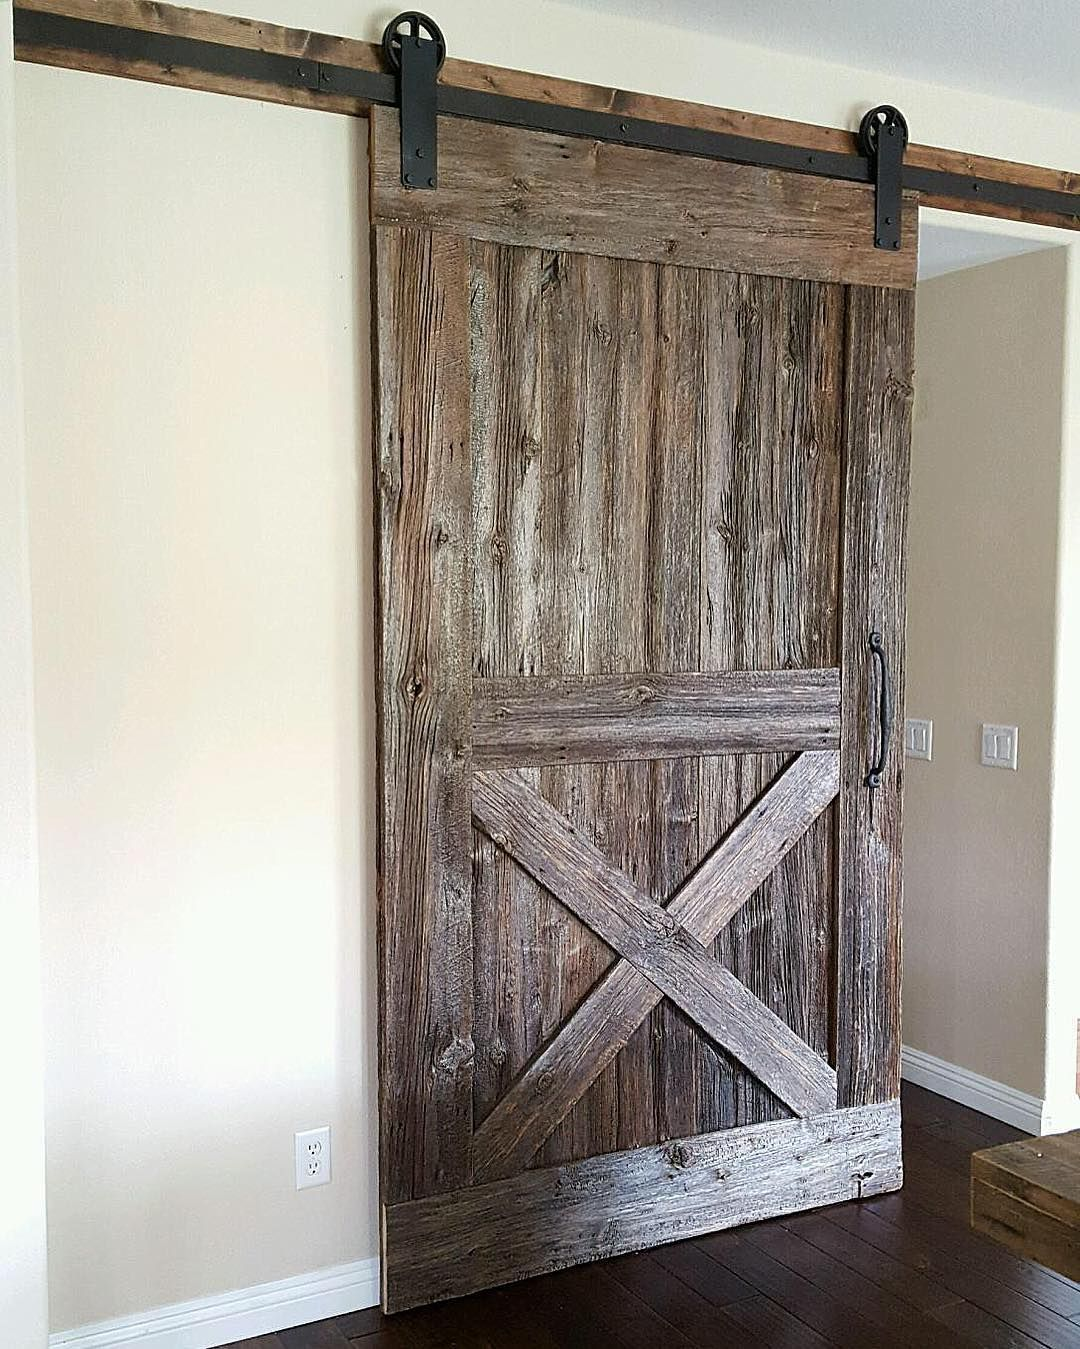 This is from another angle installed yesterday this Reclaimed Barn Door & Hardware for a kitchen.  Love how it has different tones from different angles. #barndoors #barndoor #barndoorhardware #woodwork #woodworking #reclaimedfurniture #reclaimedwood #customwoodwork #customwork #wood #wooddoor #reclaimedbarndoor #reclaimedbarndoors #rusticwoodworking #rusticwoods #rusticwood #rusticfurniture #customwoodworking de barndoorsmoreinc